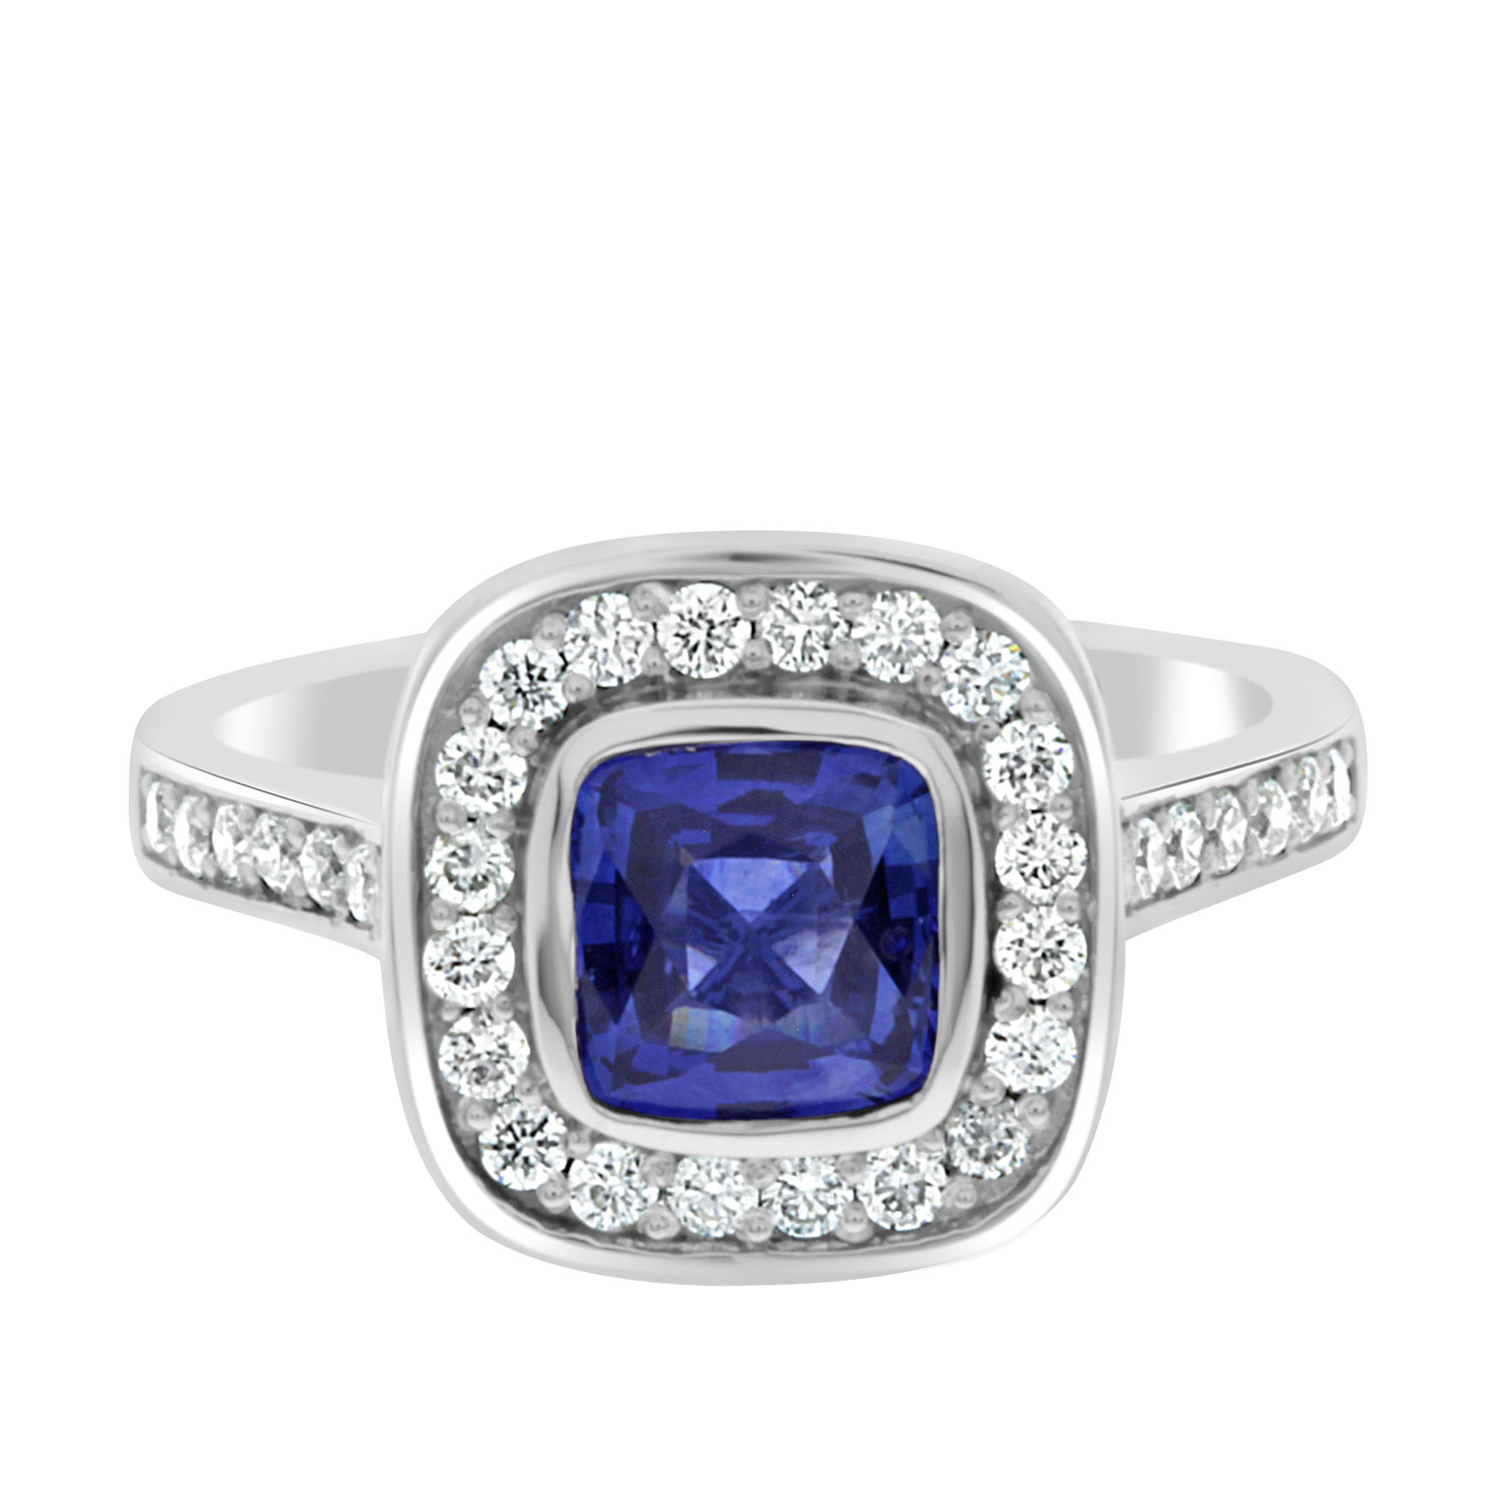 r cocktail september ring white oval il fullxfull diamond j genuine product sapphire gold jewels pave birthstone